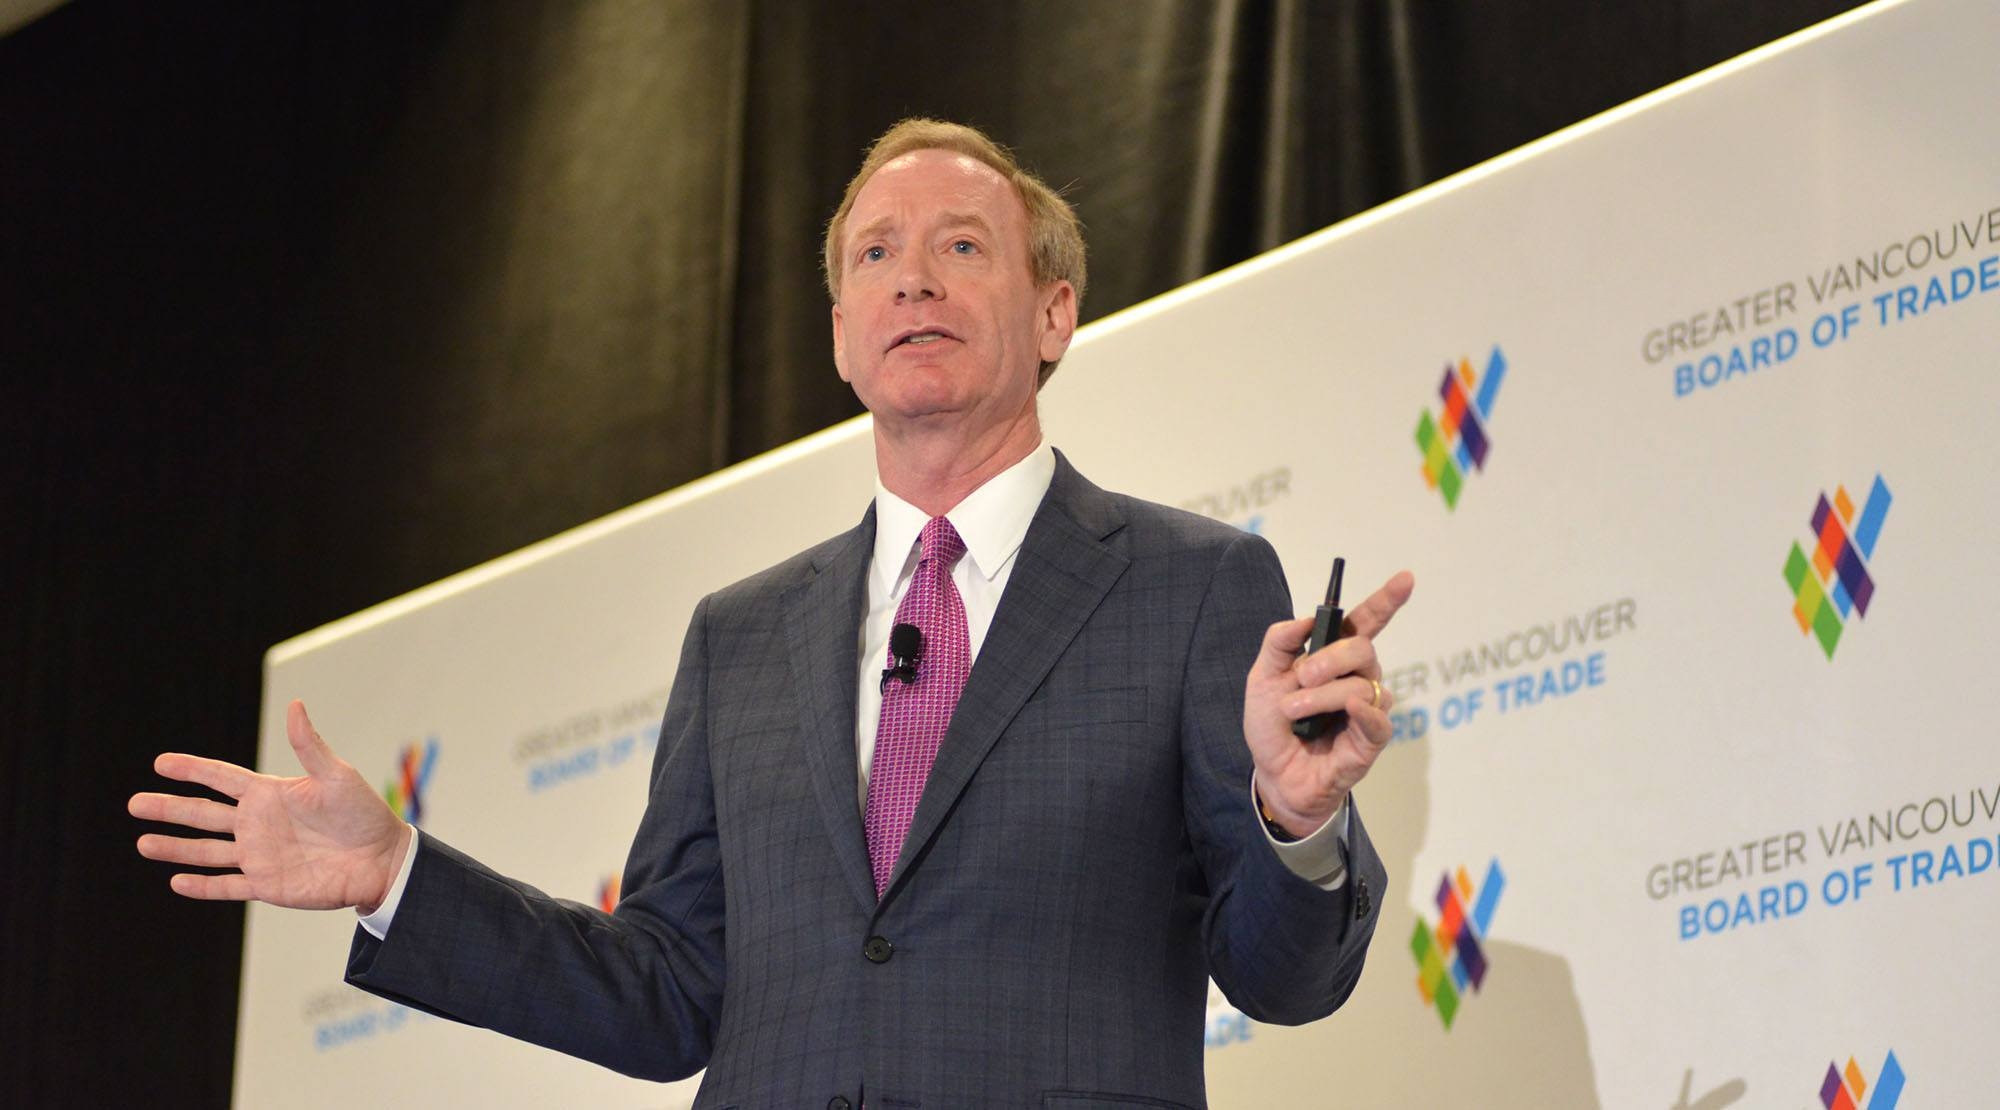 Microsoft President Brad Smith in Vancouver on June 28, 2017 (Greater Vancouver Board of Trade)